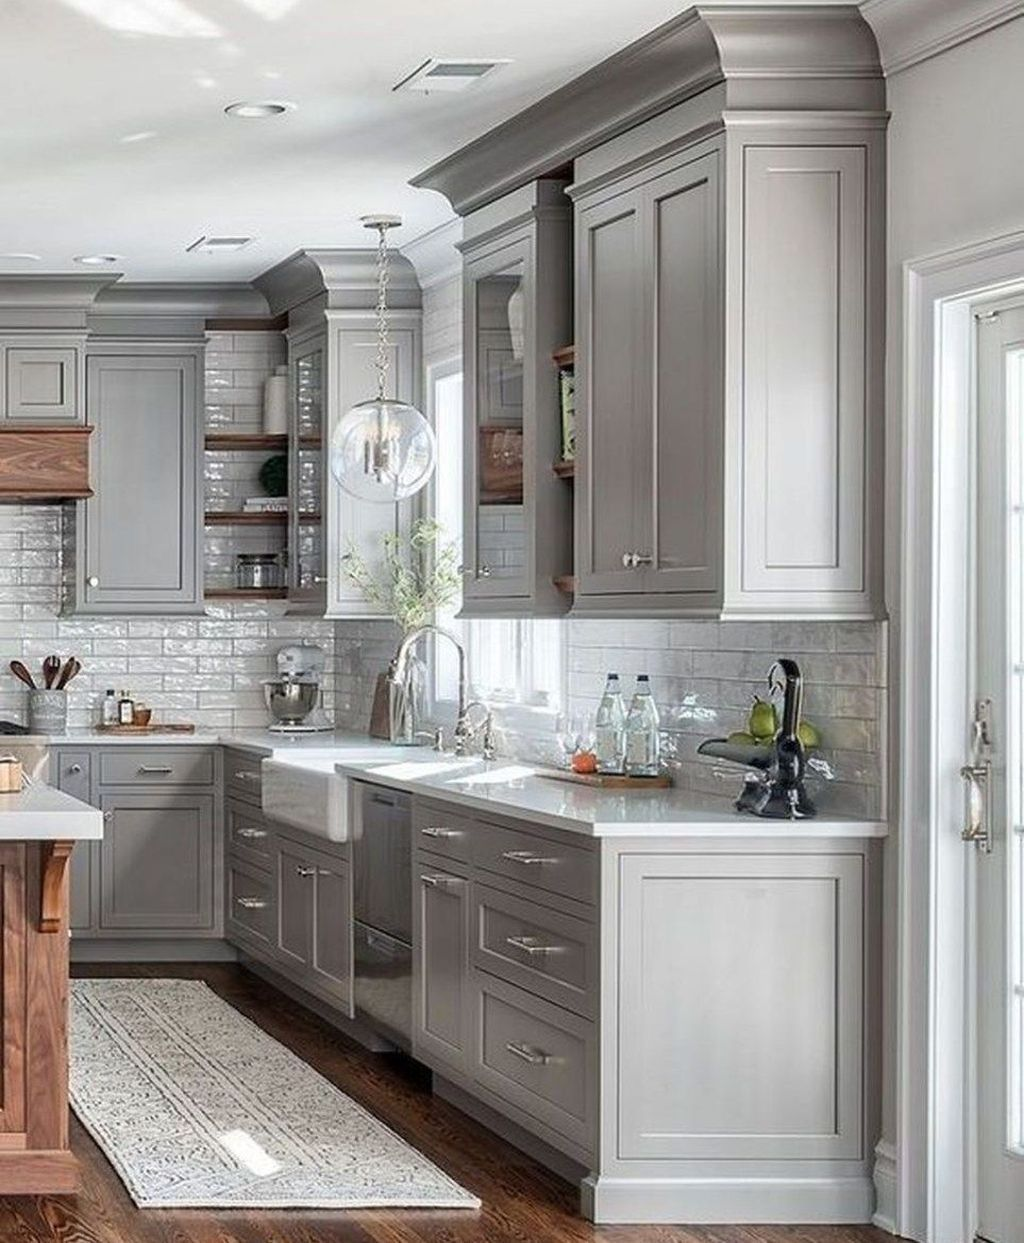 35 Cool Kitchen Design Ideas With Temporary Looks In 2020 Affordable Farmhouse Kitchen Farmhouse Kitchen Design Kitchen Cabinet Design